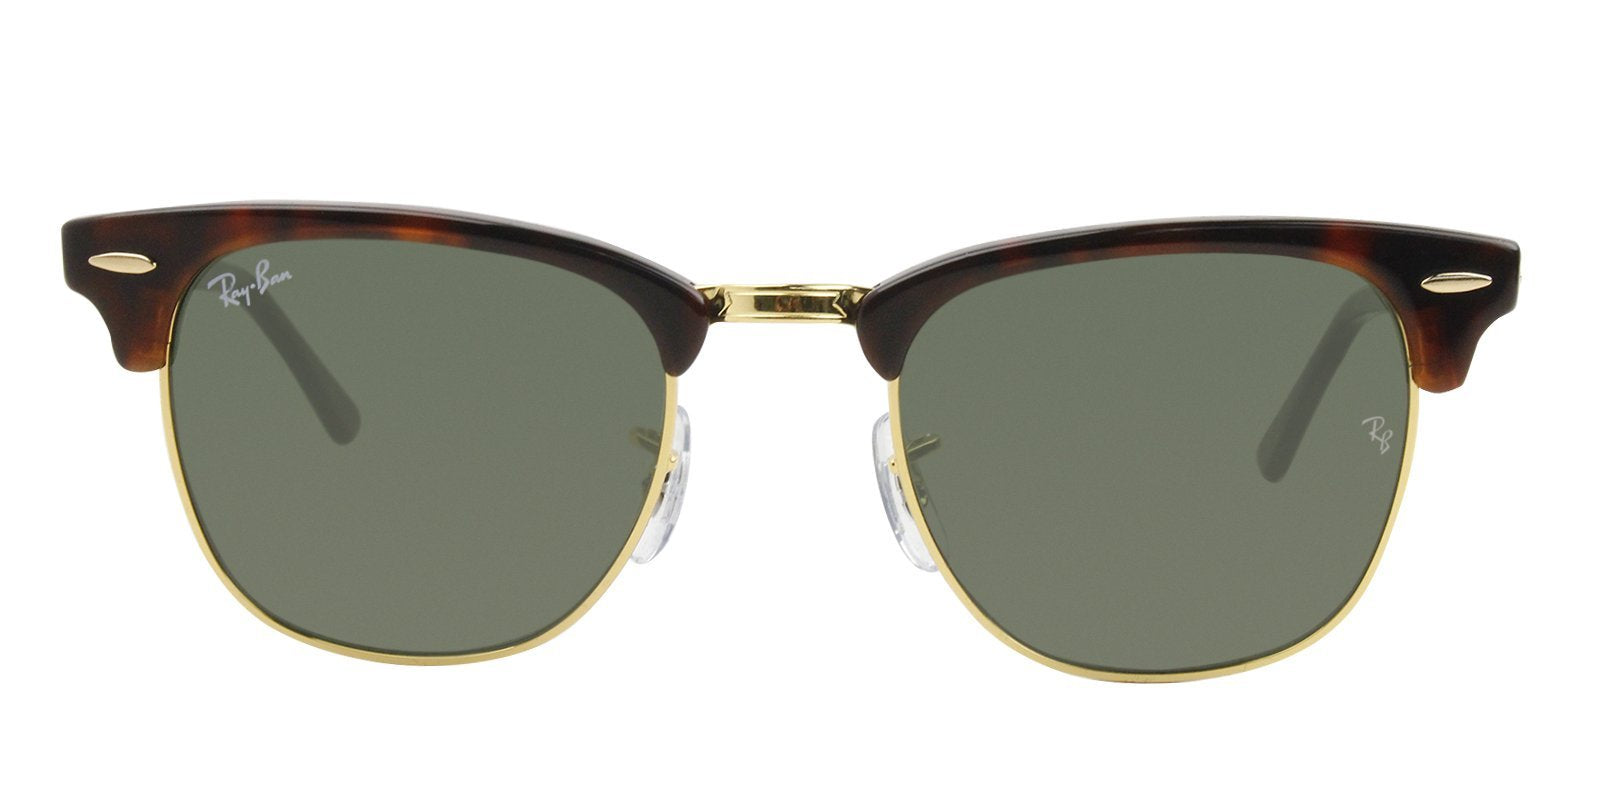 Ray Ban - Clubmaster Tortoise Oval Unisex Sunglasses - 49mm-Sunglasses-Designer Eyes